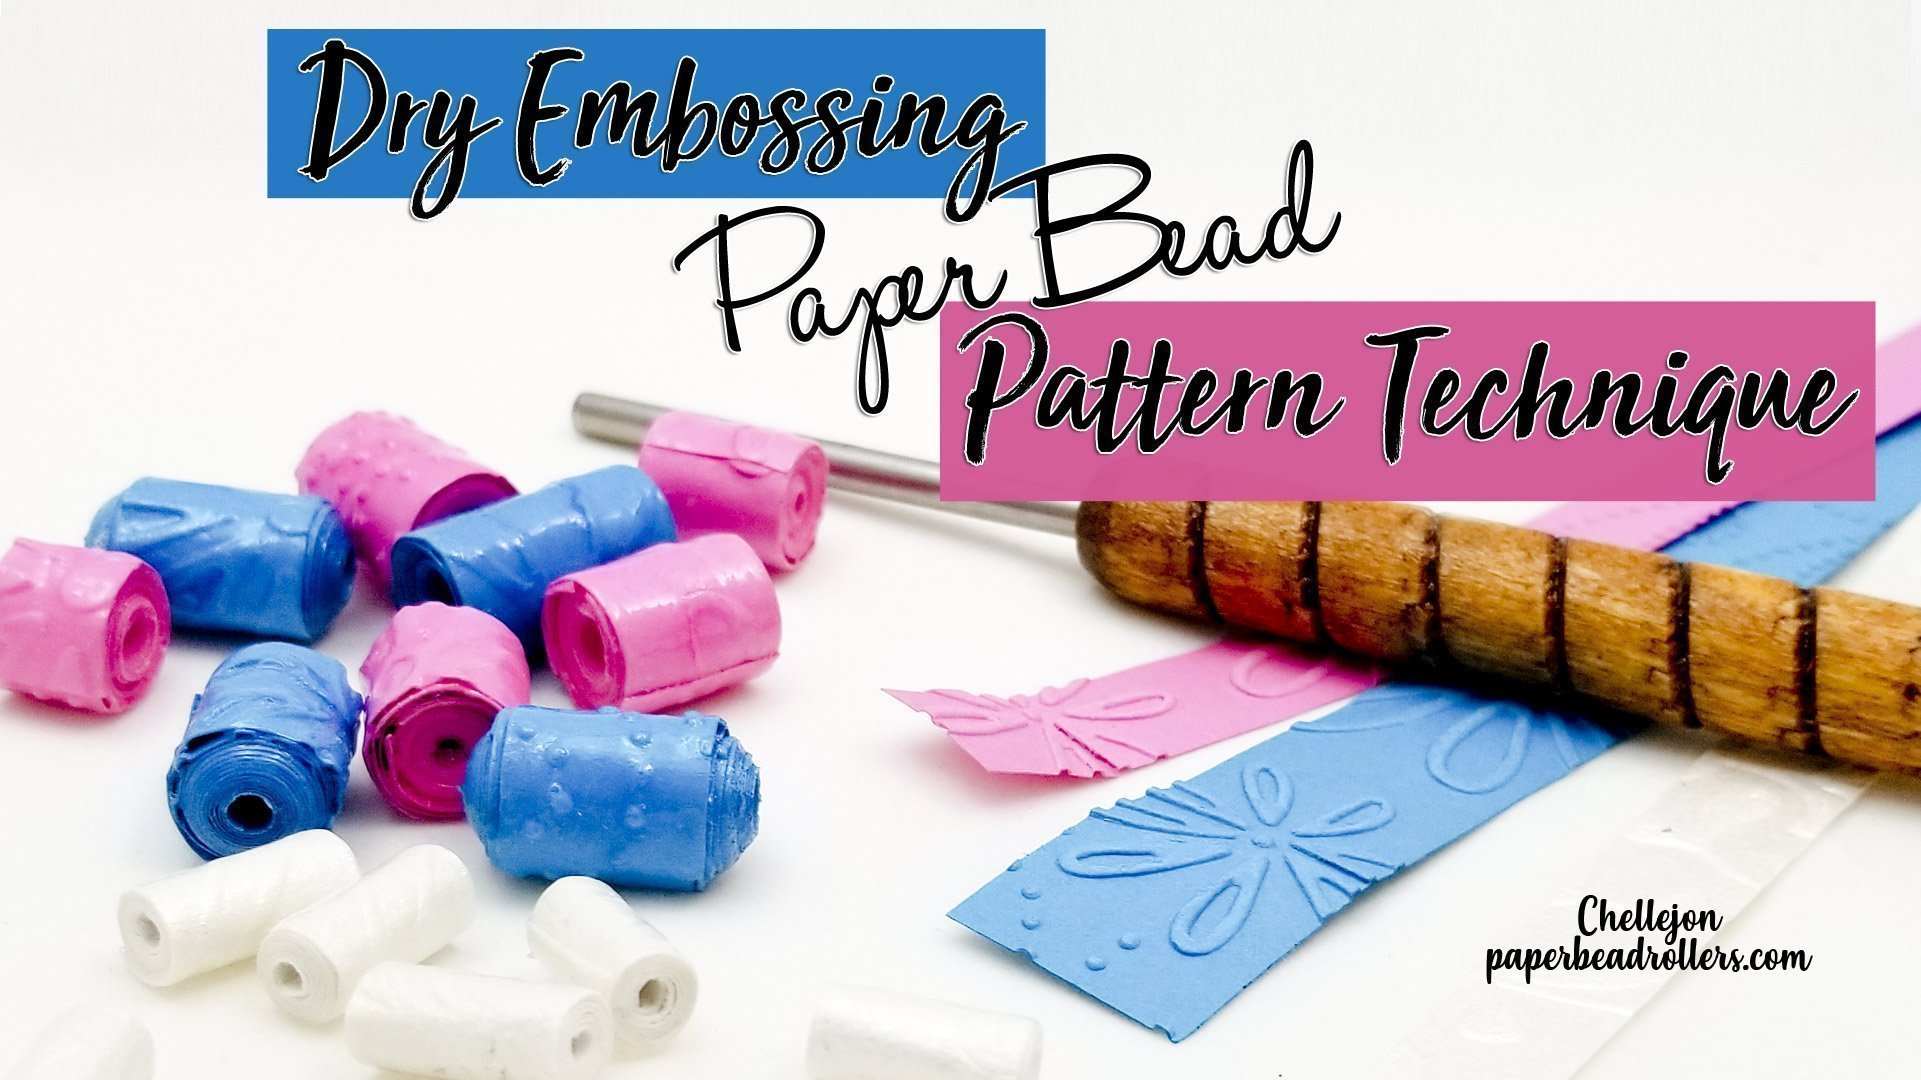 Dry Embossing for Raised Bead Patterns